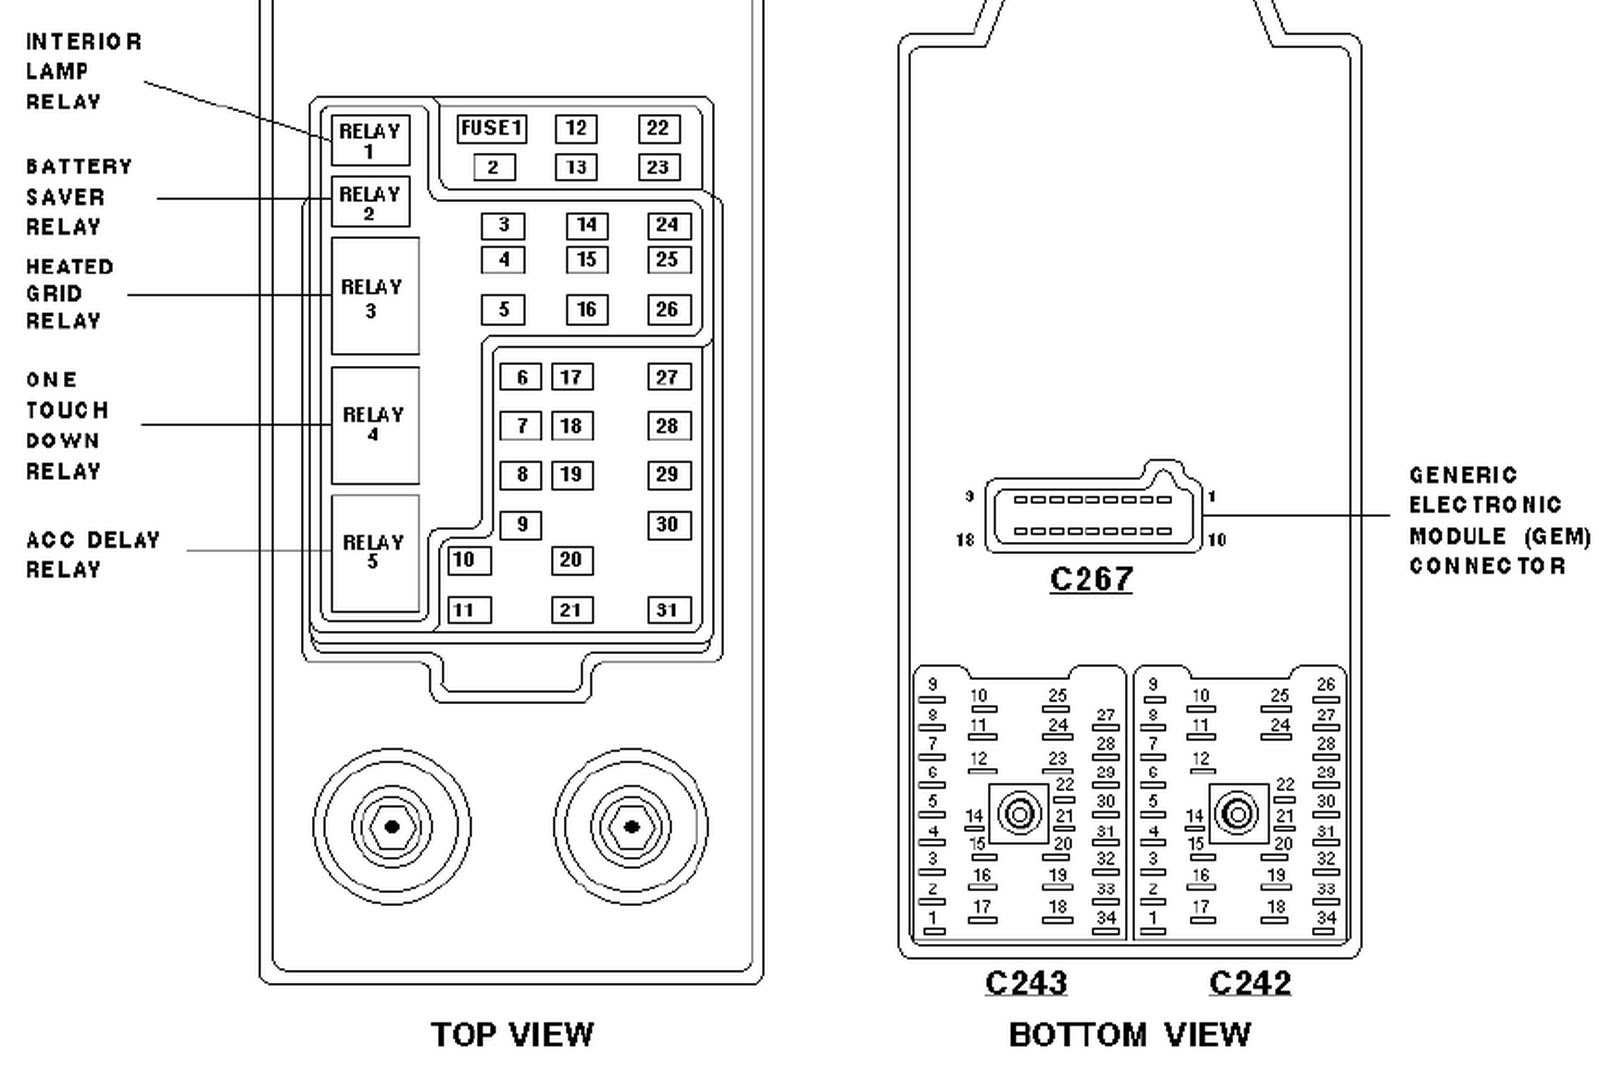 1997 Ford Expedition XLT: the fuse box diagram ... Triton ...